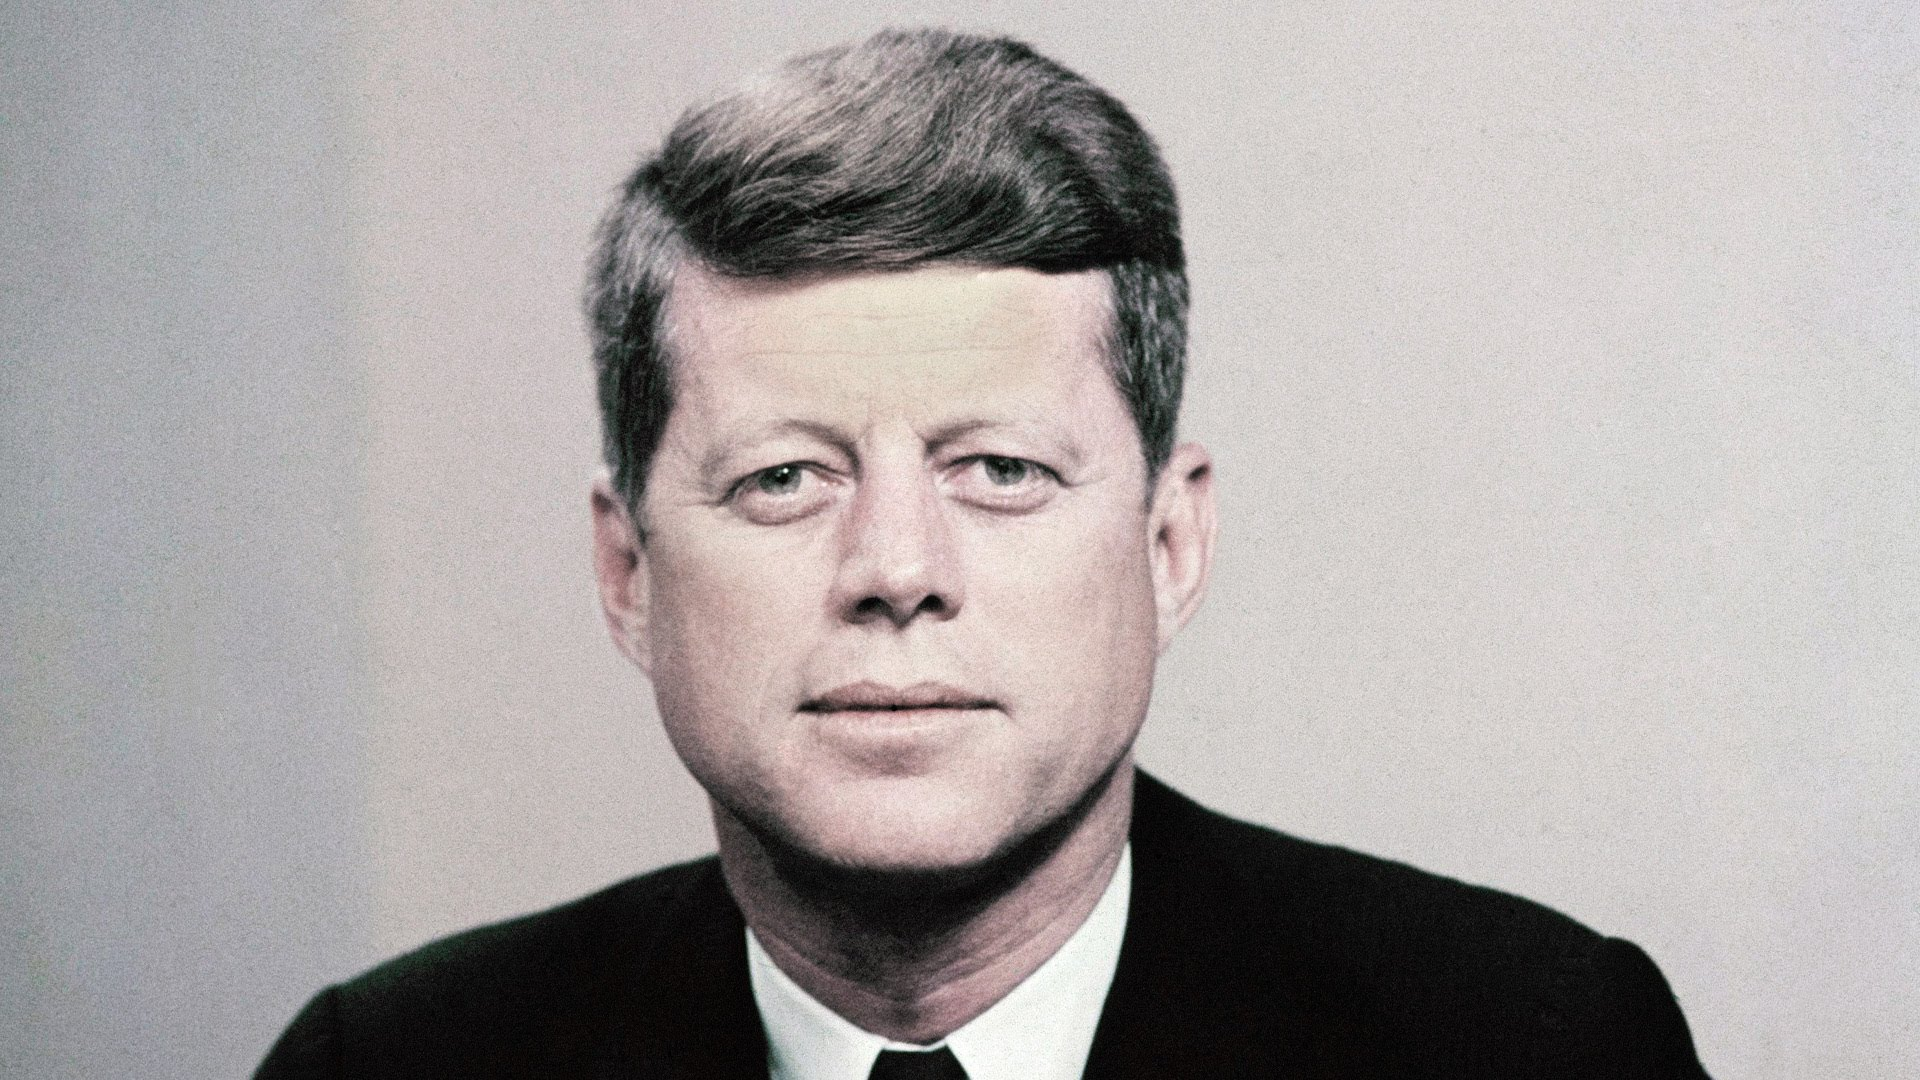 Are not President john f kennedy speaking, would